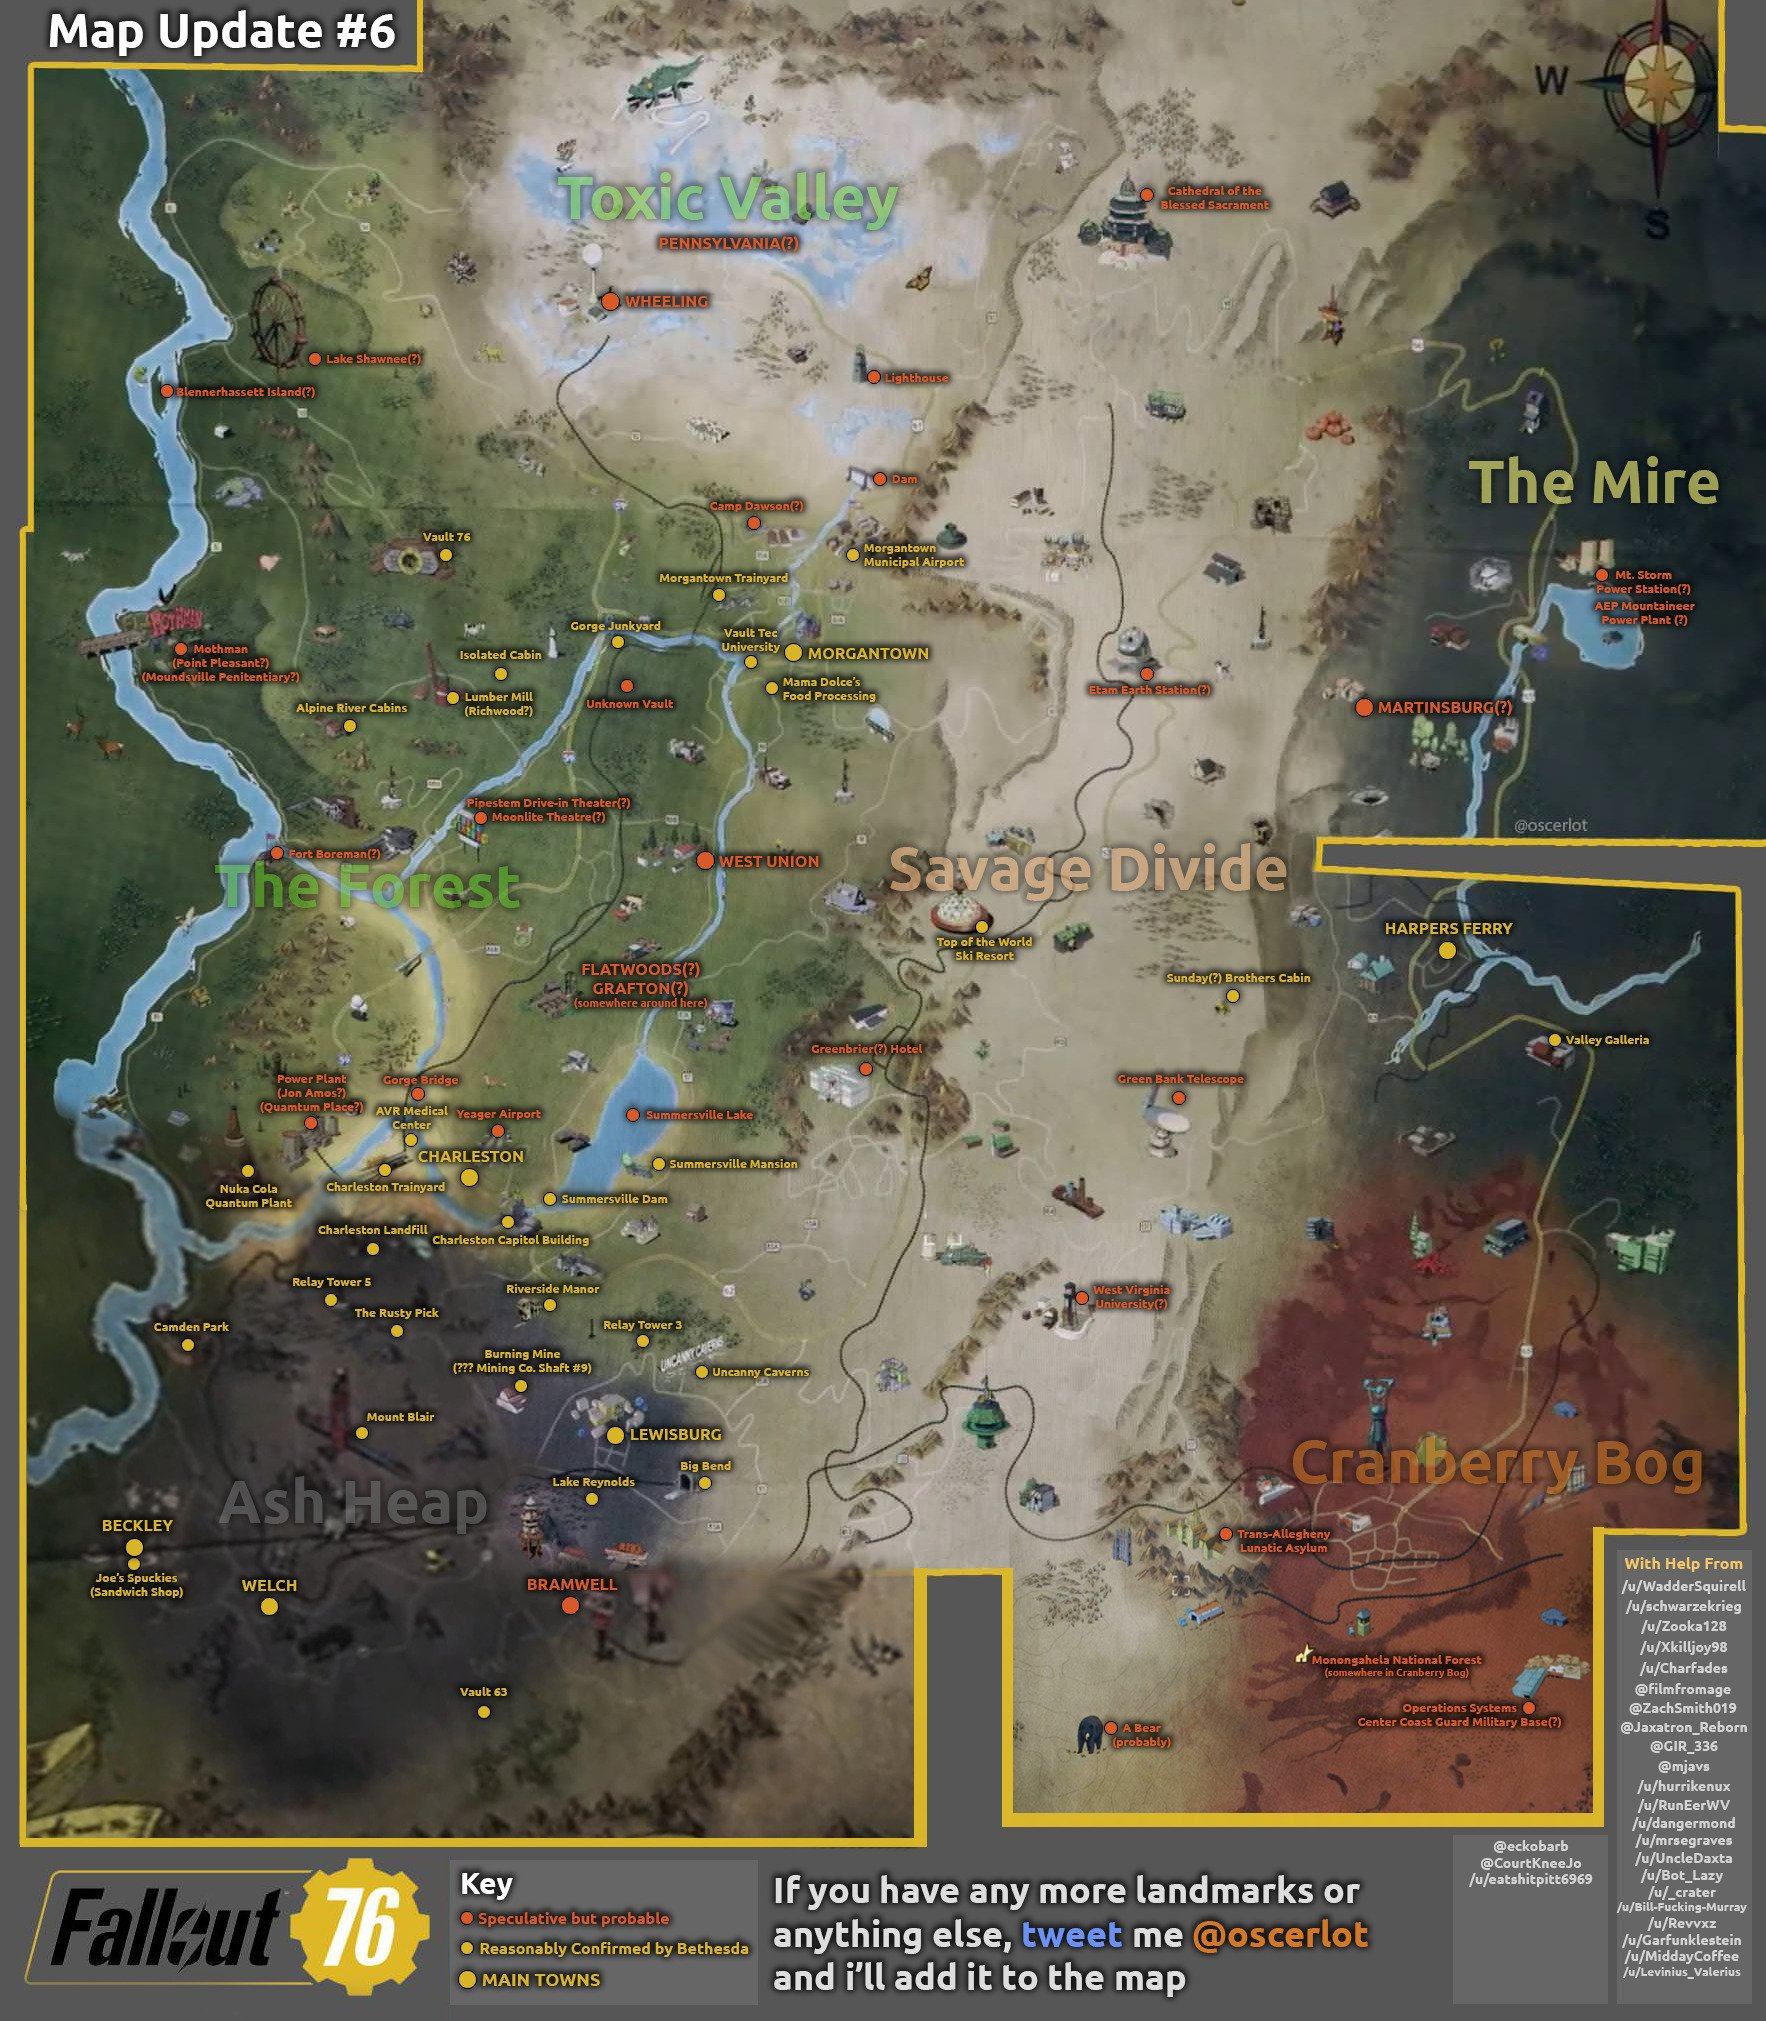 Fallout 76' Full Map: Our Best Look Yet at the Massive New